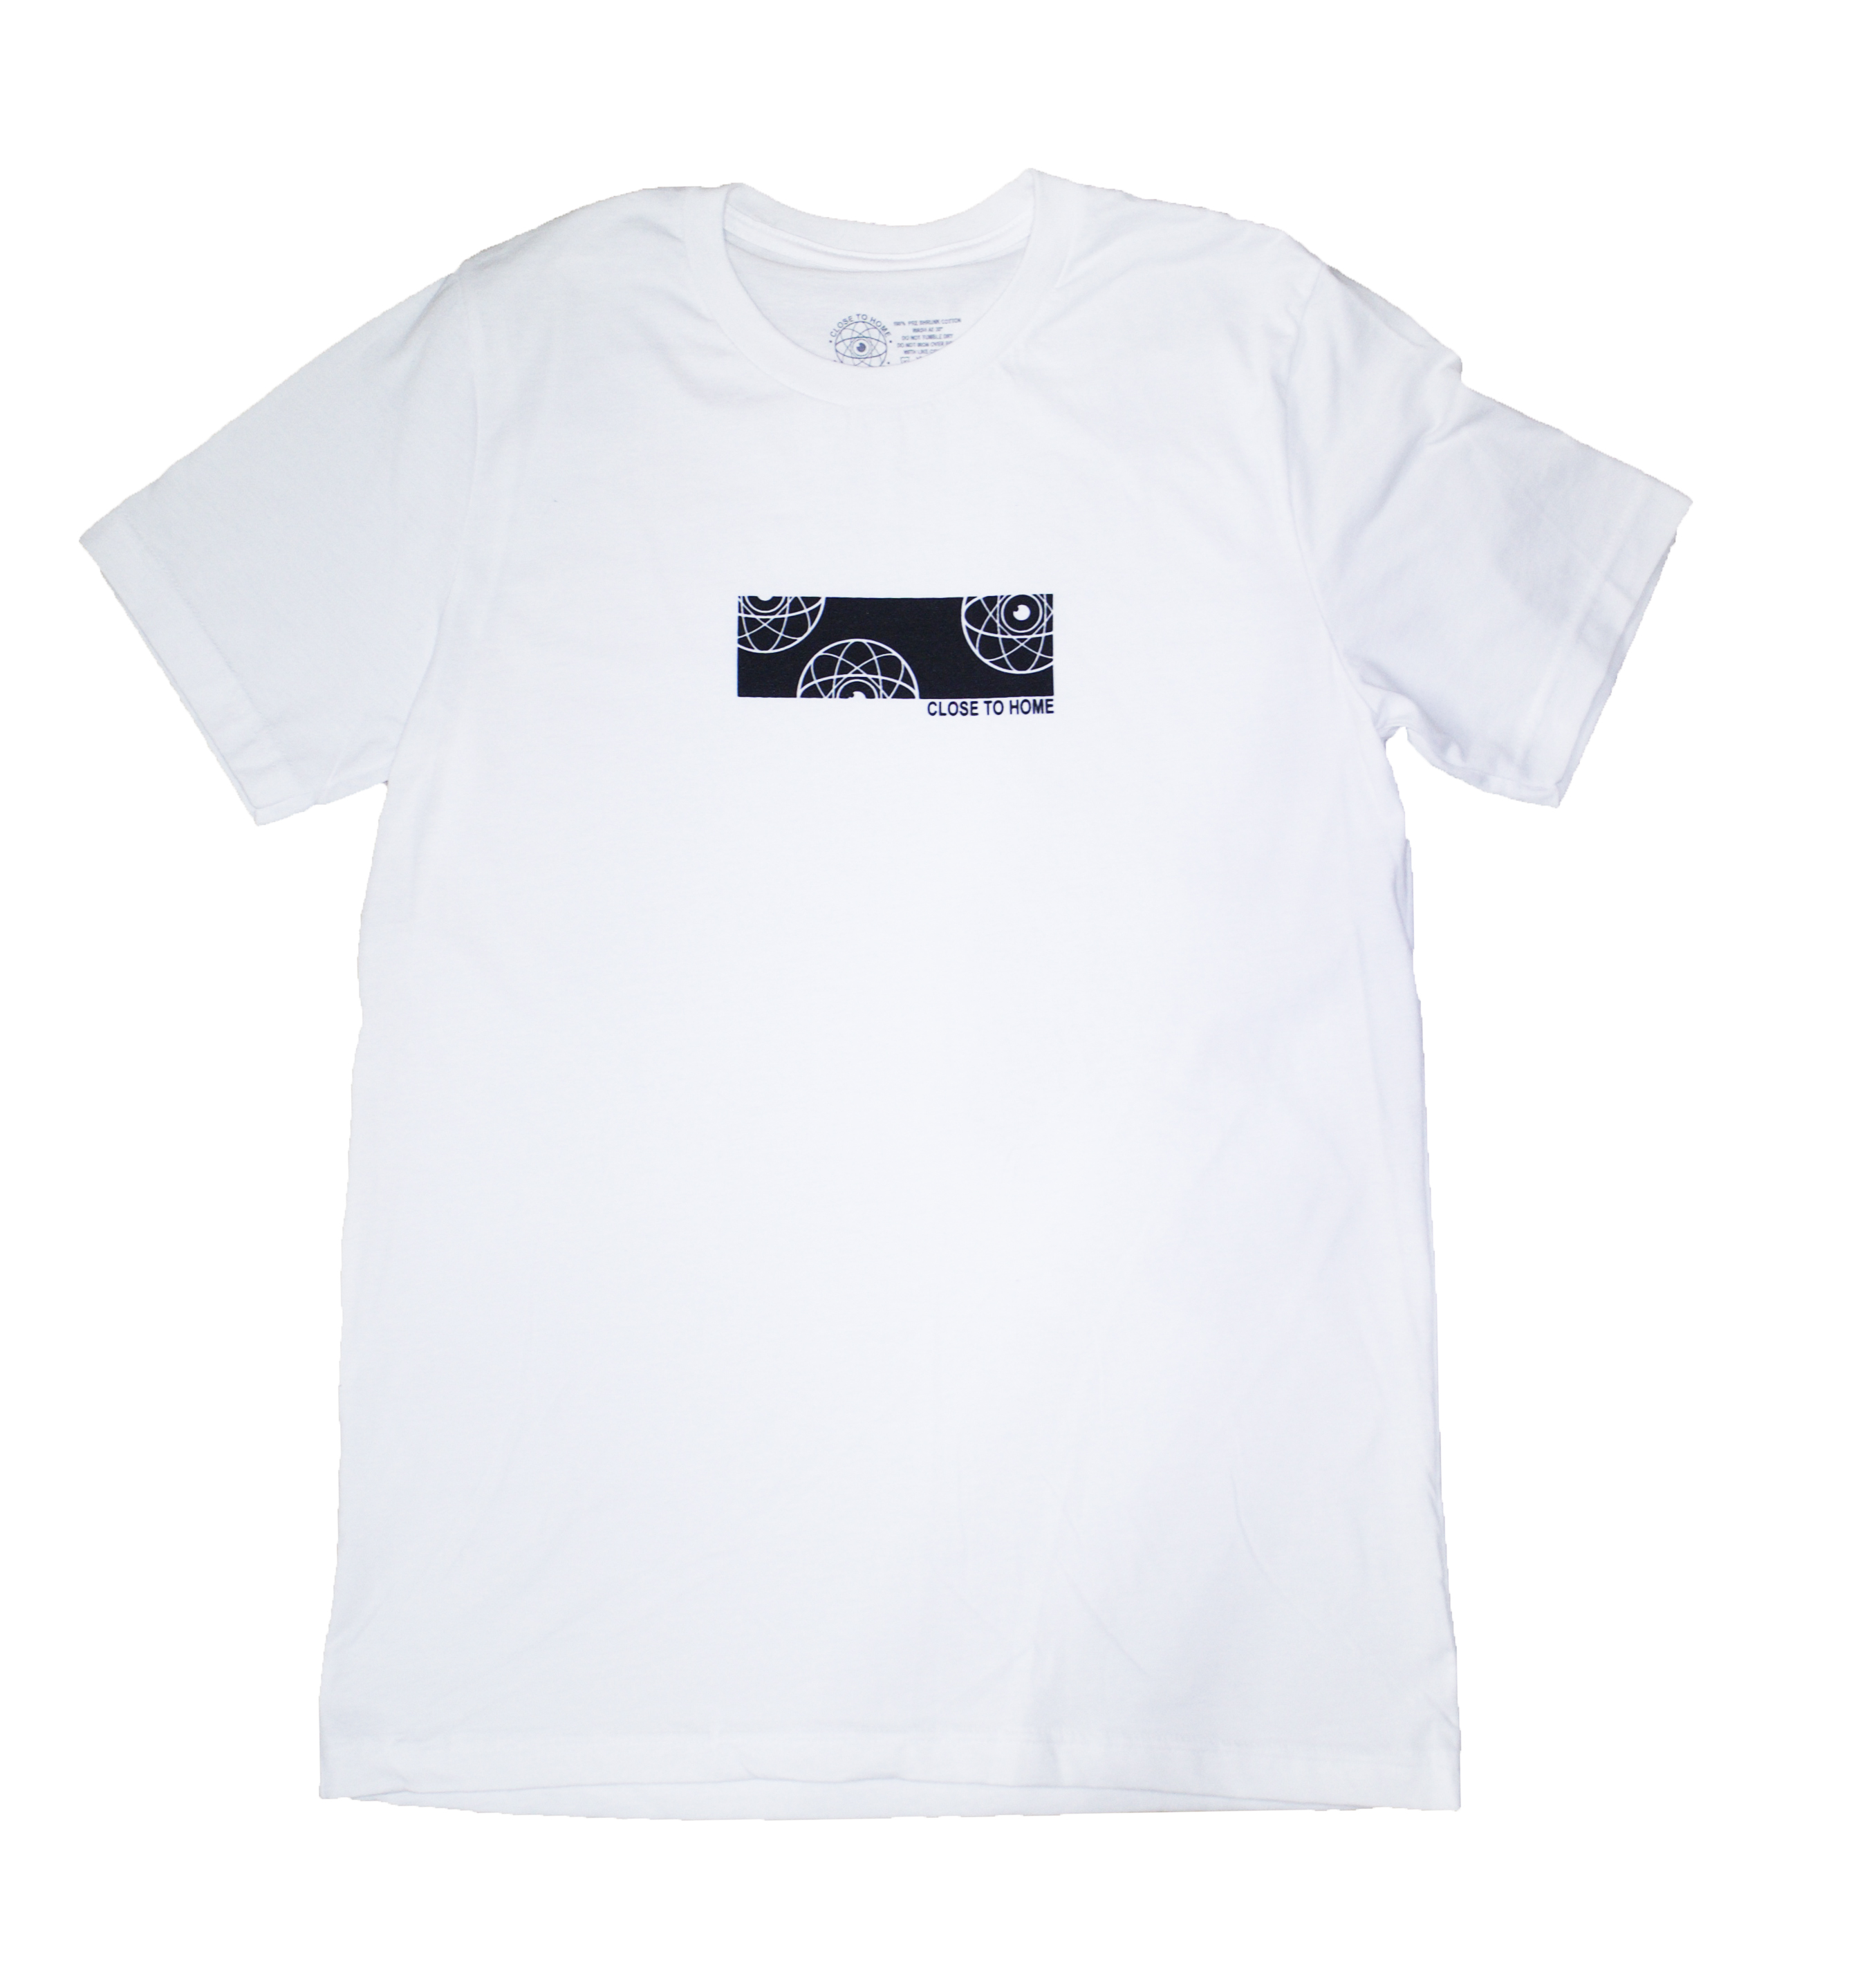 Close To Home - Black Box Tee (Close To Home Merchandise No. 1)